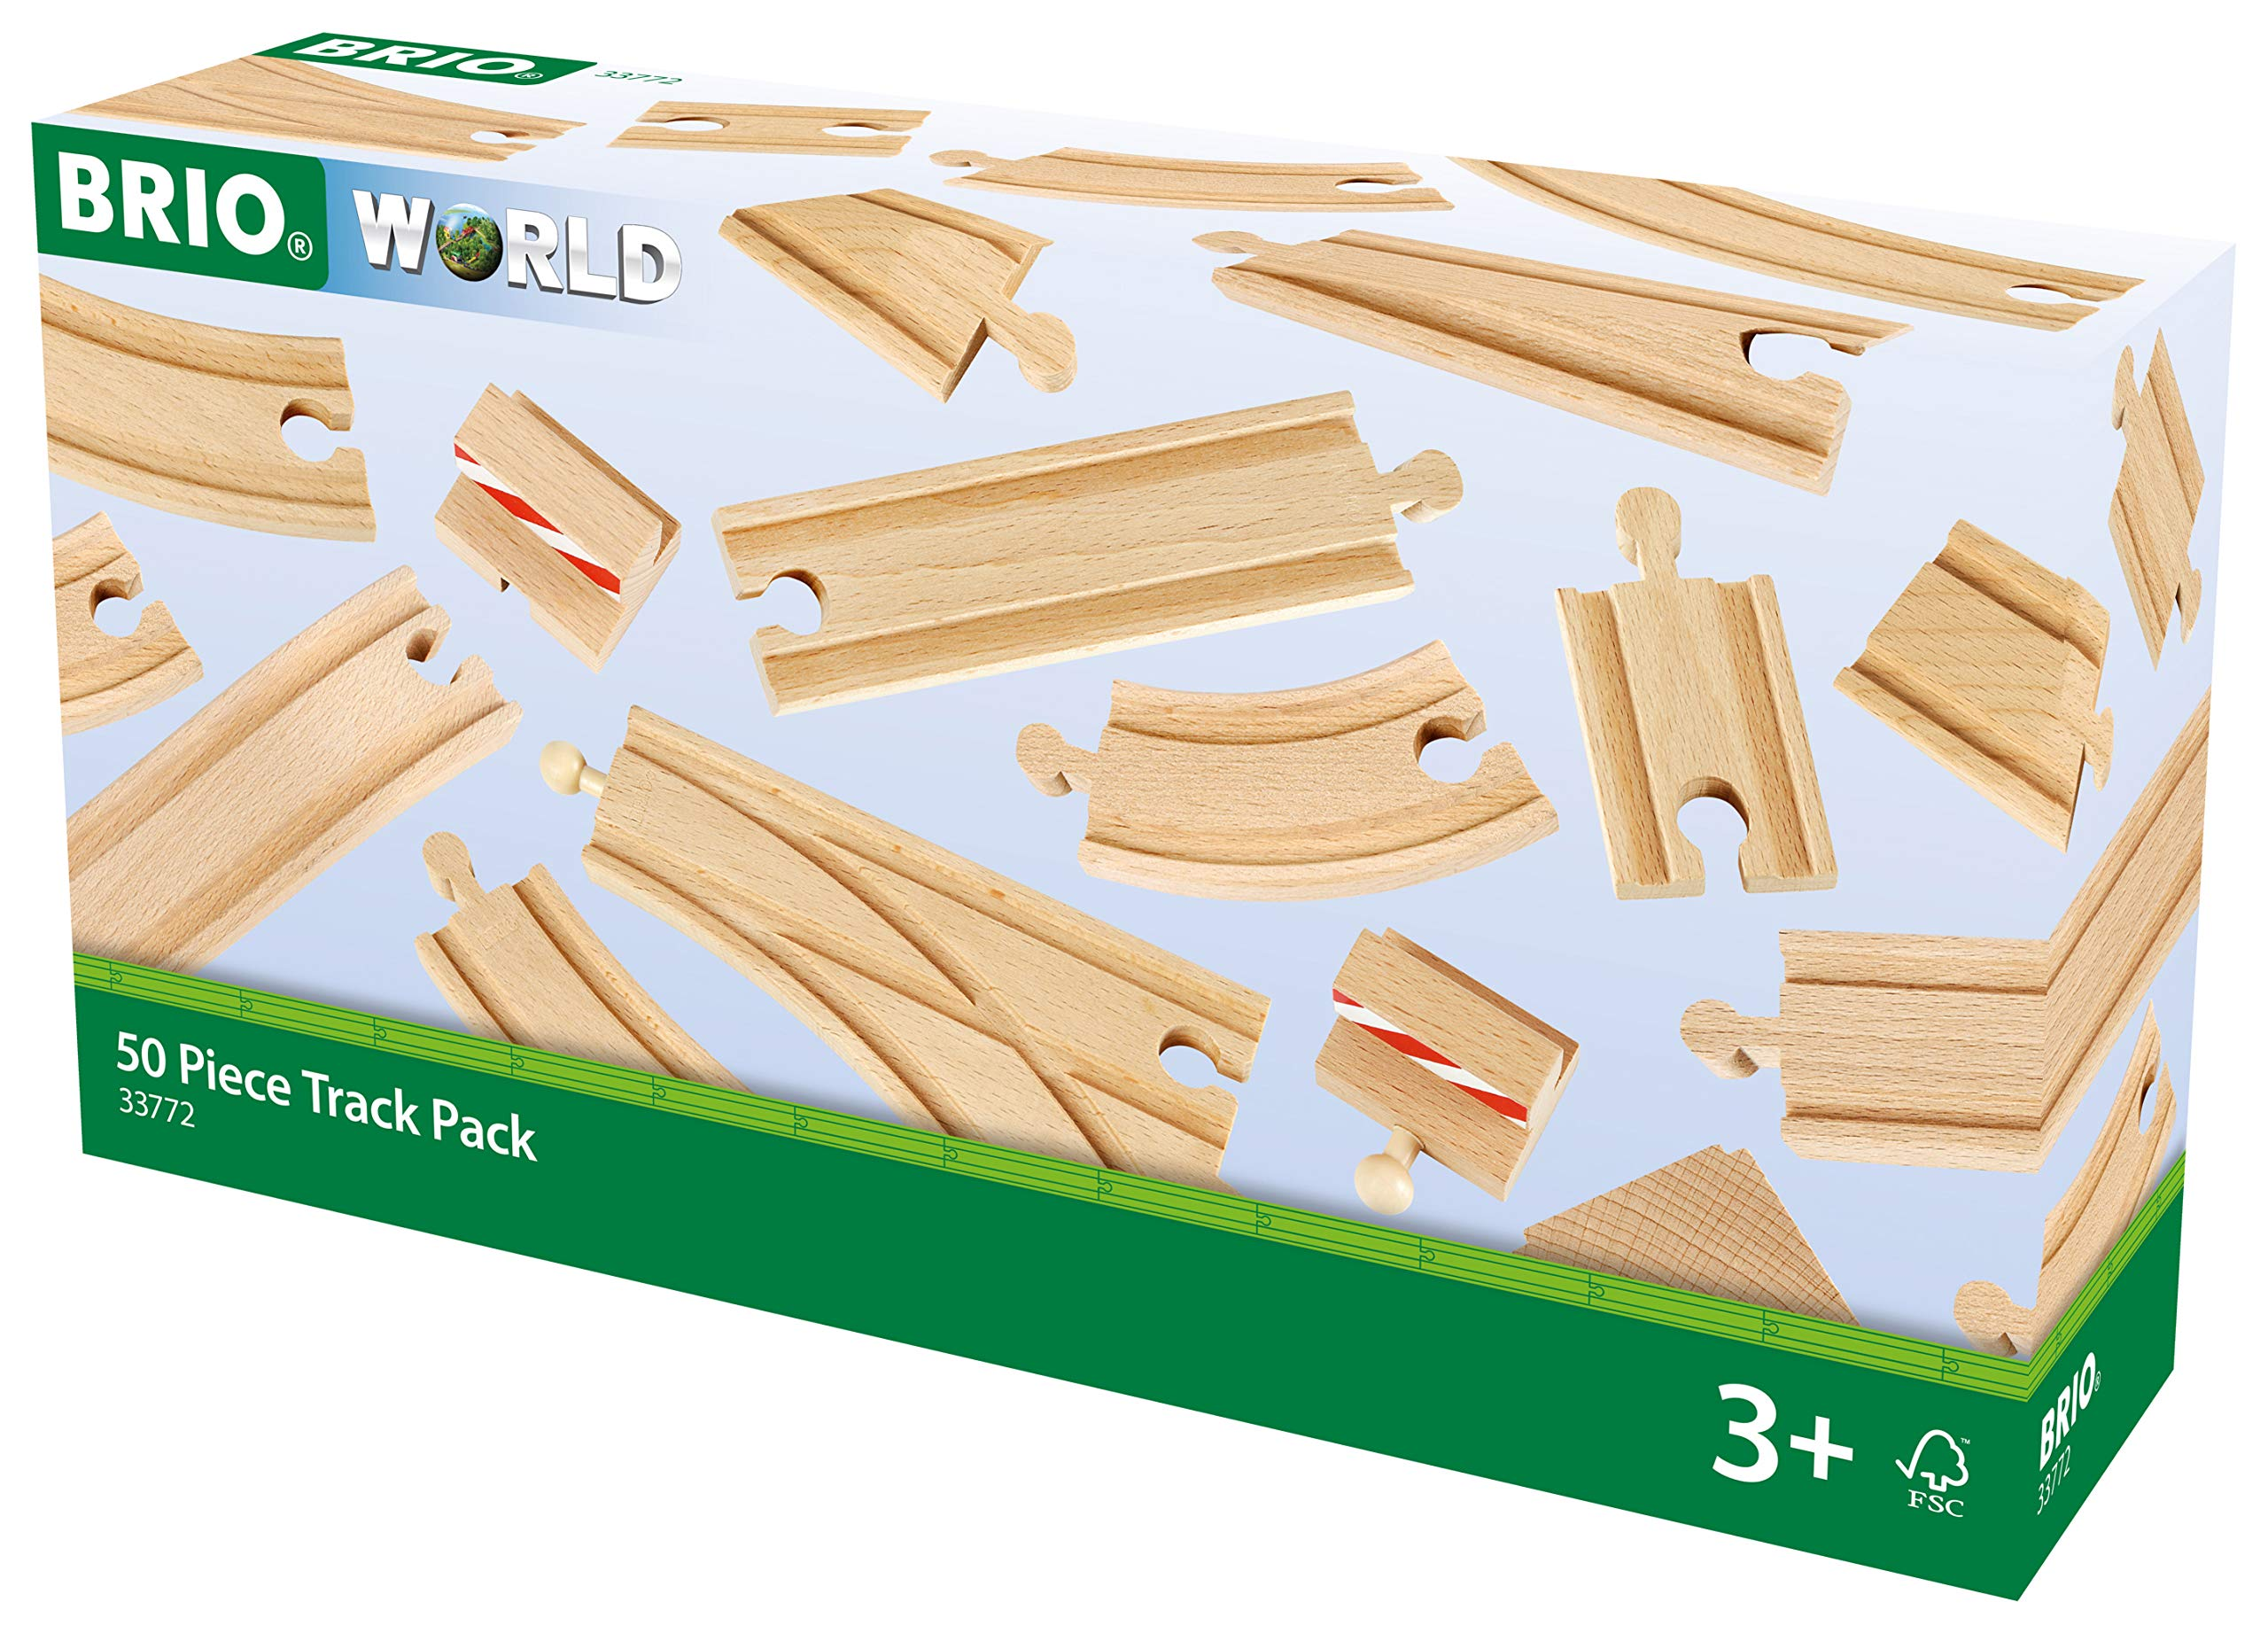 BRIO 33772 Special Track Pack | 50 Pieces of Wooden Tracks and Train Accessories for Kids Age 3 and Up